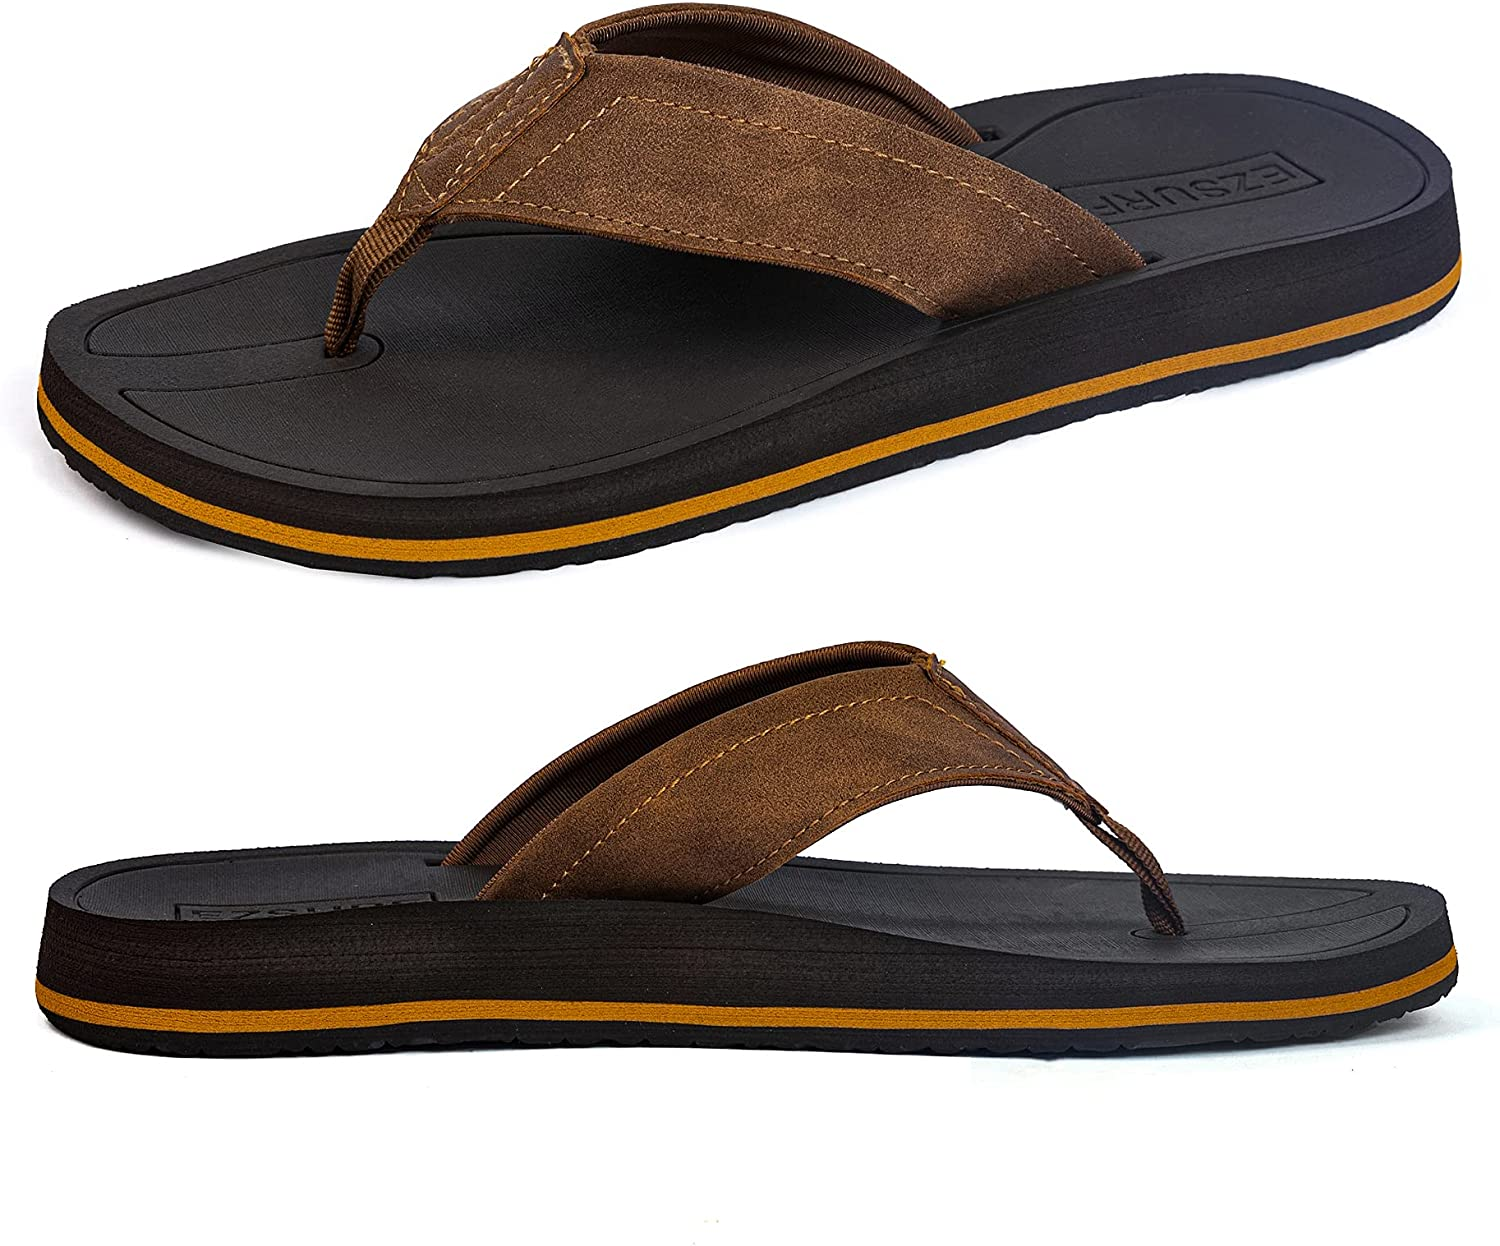 EZSURF Orthotic Thong Sandals for Men with Arch Support,Yoga Mat Flip Flops with Non-Slip Rubber Sole and Retro Leather Straps